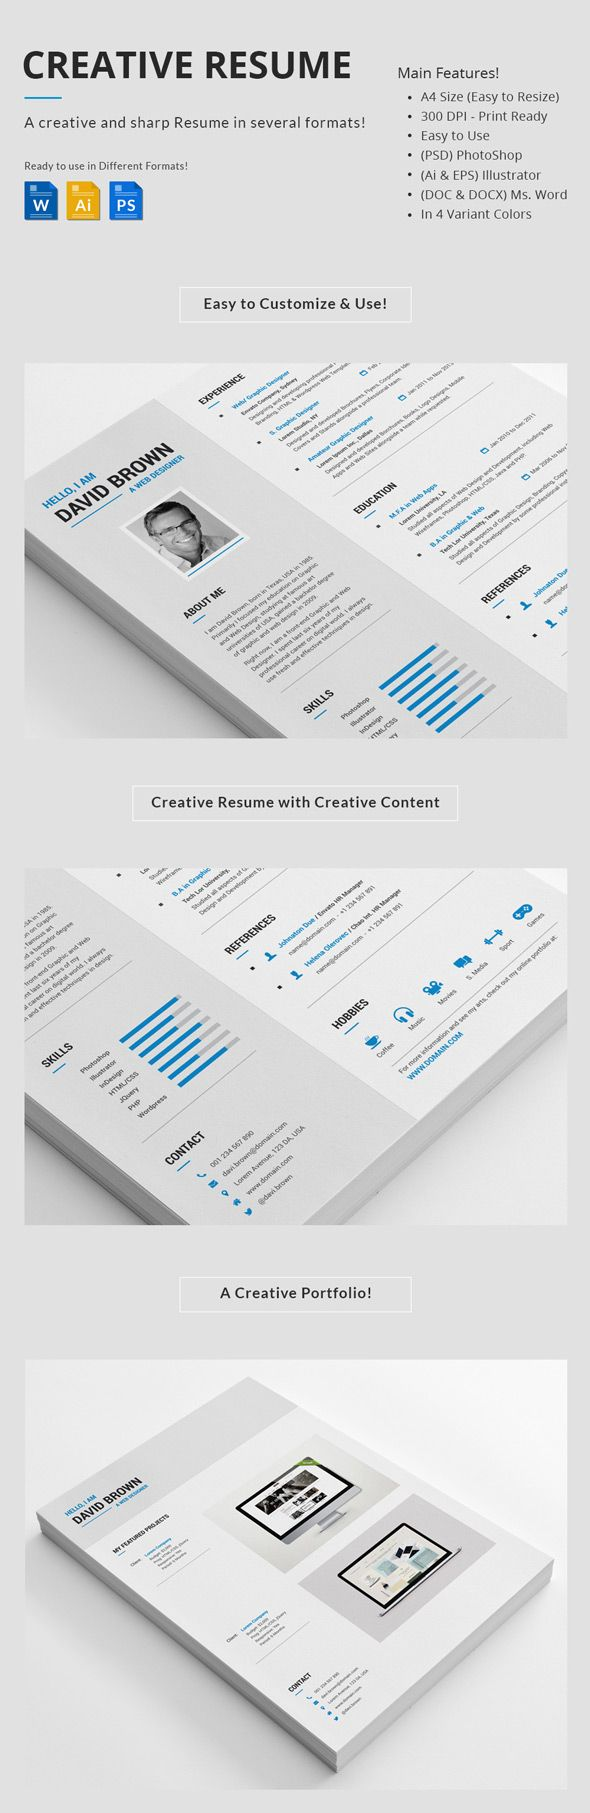 best ideas about english cv template cv english resume set resume design professional creative 25 creative cv book creative resume templates resume building resume inspiration cv template